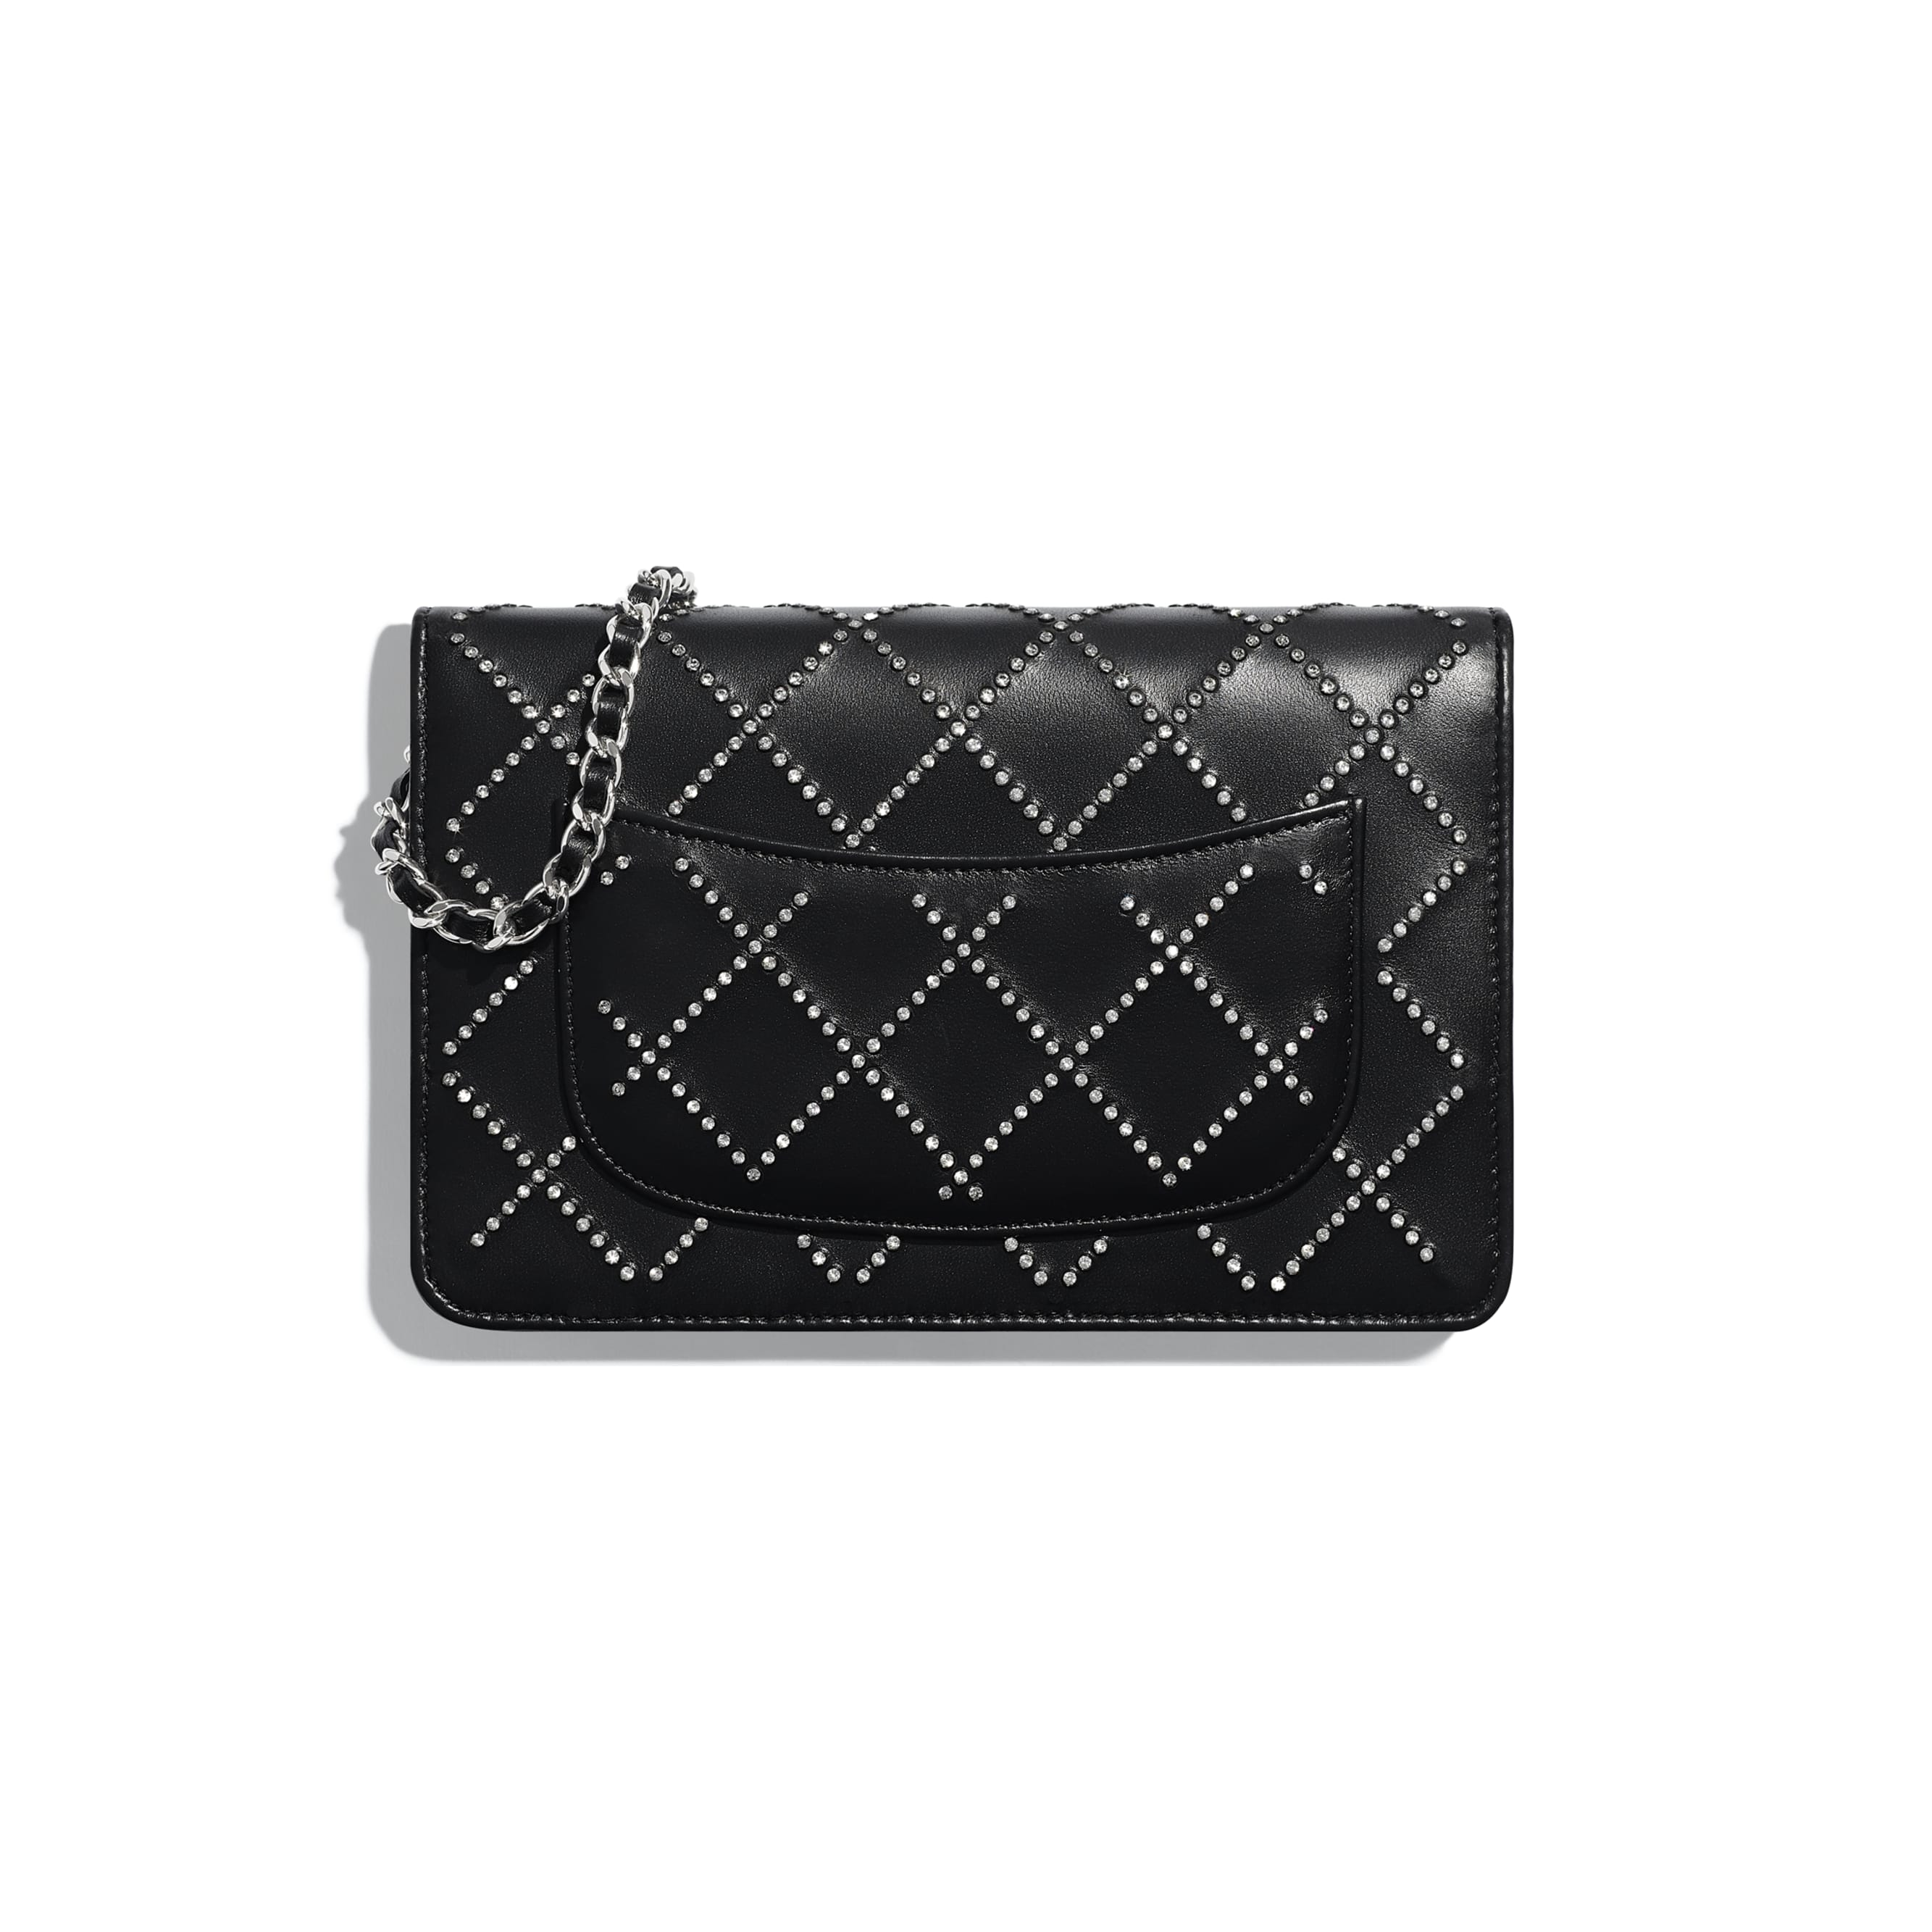 Wallet On Chain - Black - Iridescent Lambskin, Strass & Silver-Tone Metal - CHANEL - Alternative view - see standard sized version